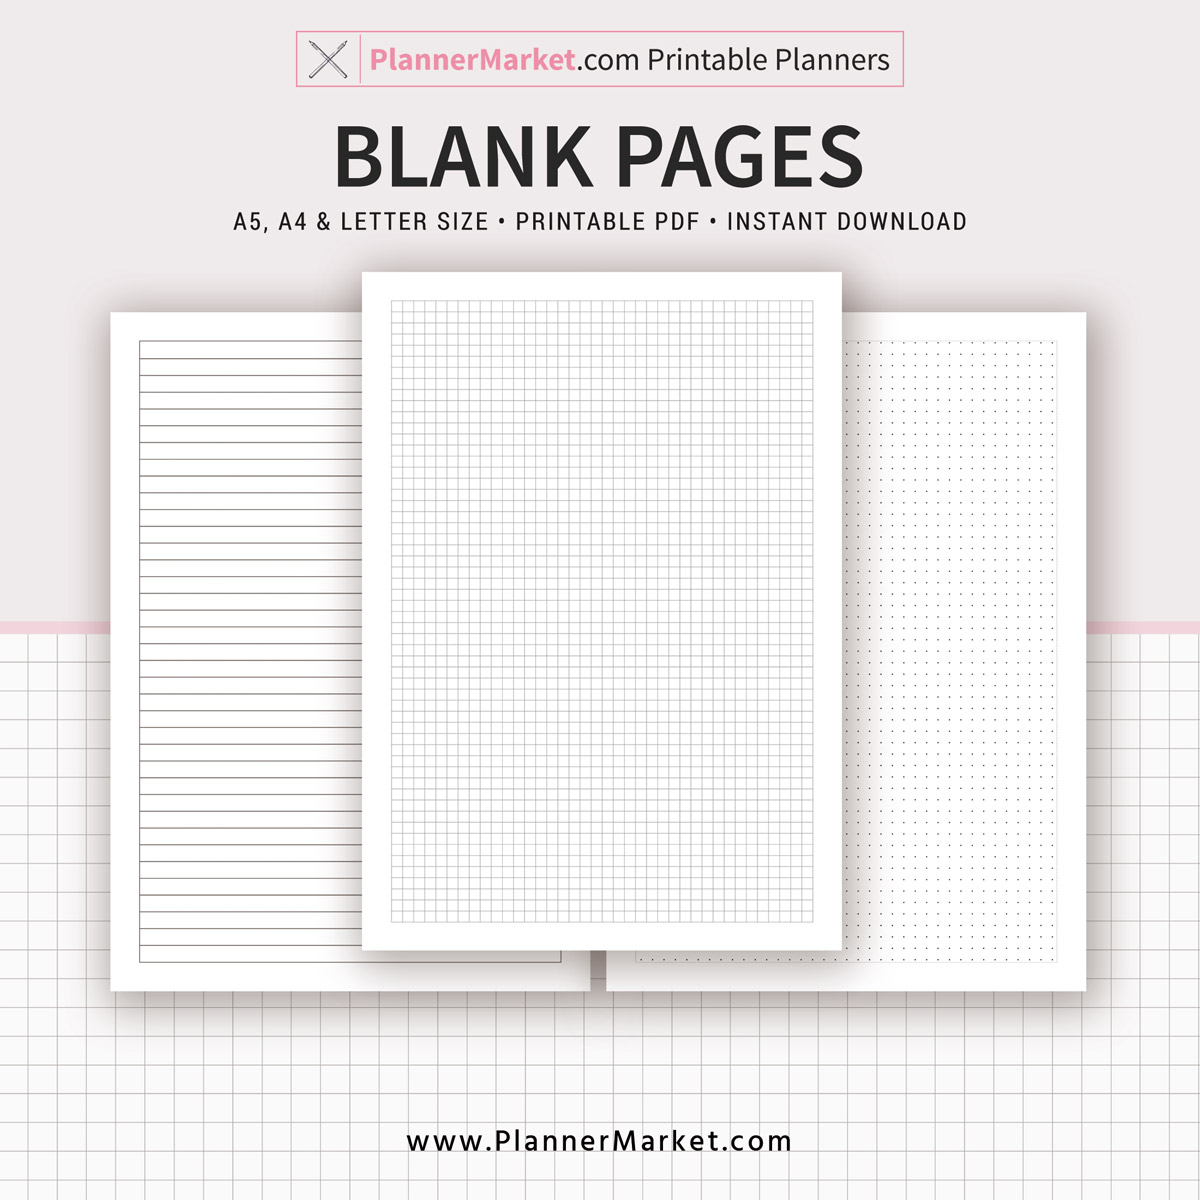 graphic about Blank Planner called Blank Internet pages, 2019 Planner, Planner Inserts, A5, A4, Letter Dimensions, Planner Refill, Planner Binder, Immediate Obtain